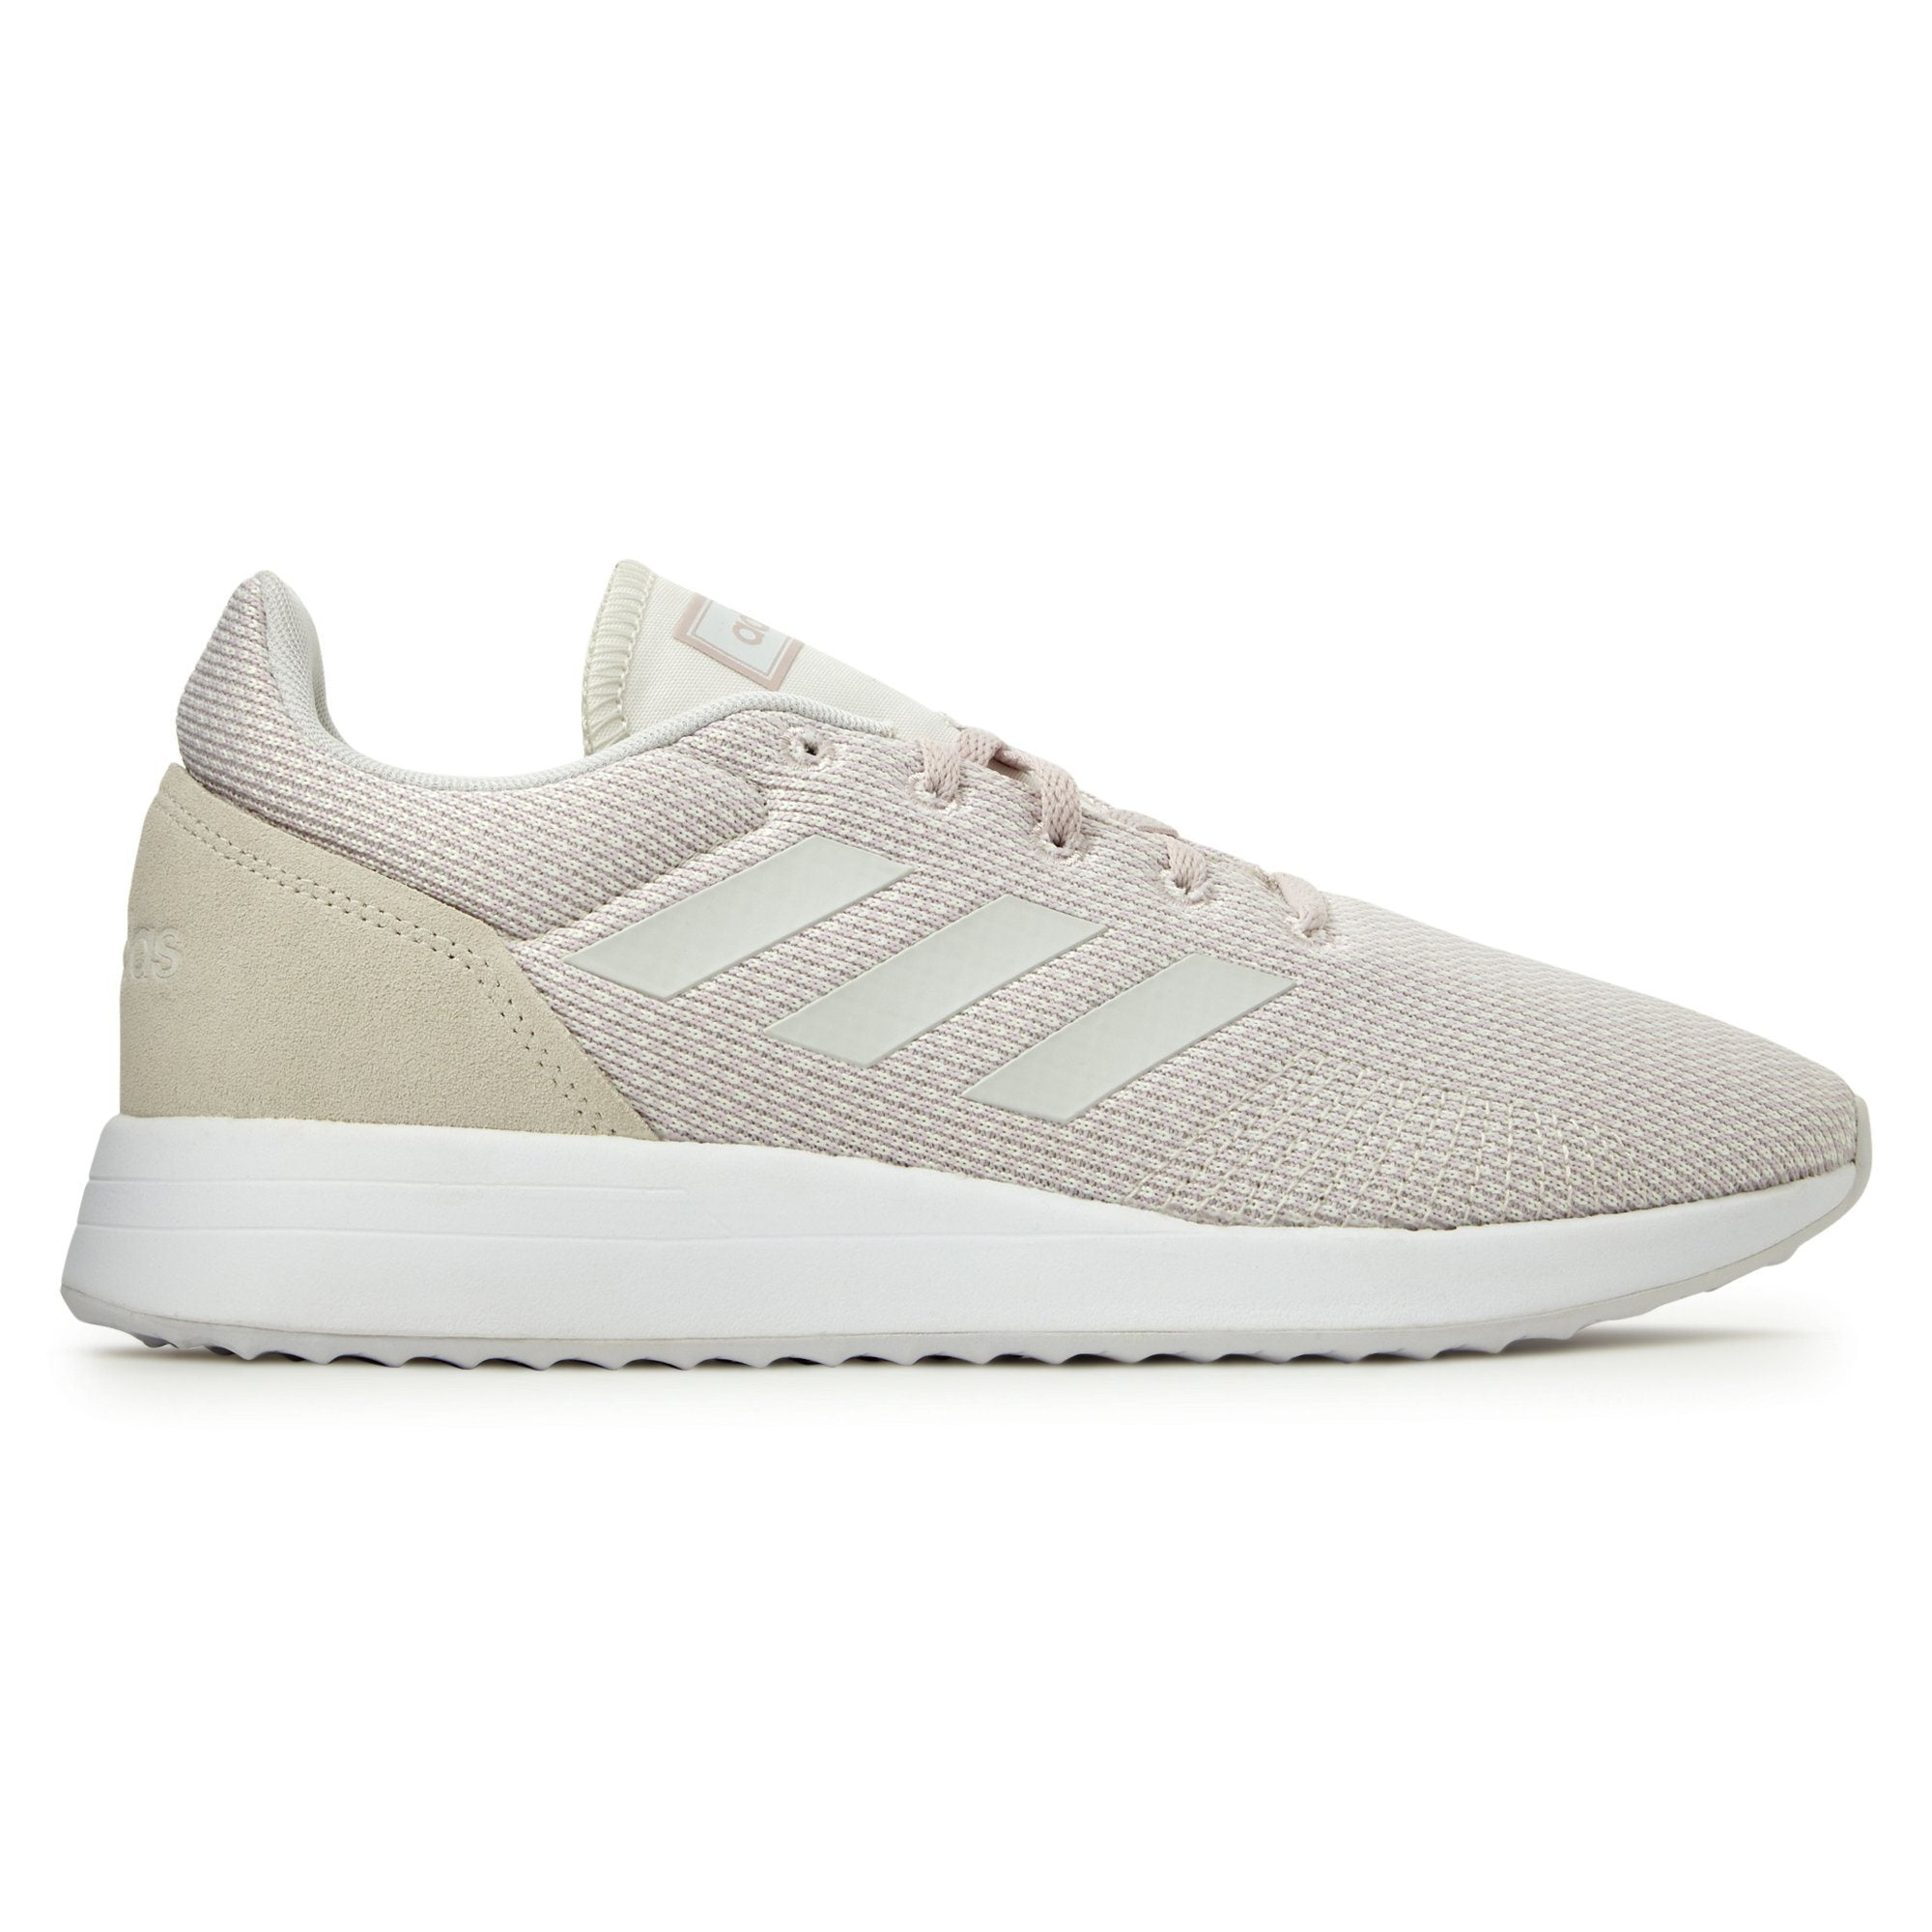 Adidas Womens Run70s Fabric Low Top Lace Up Running Sneaker